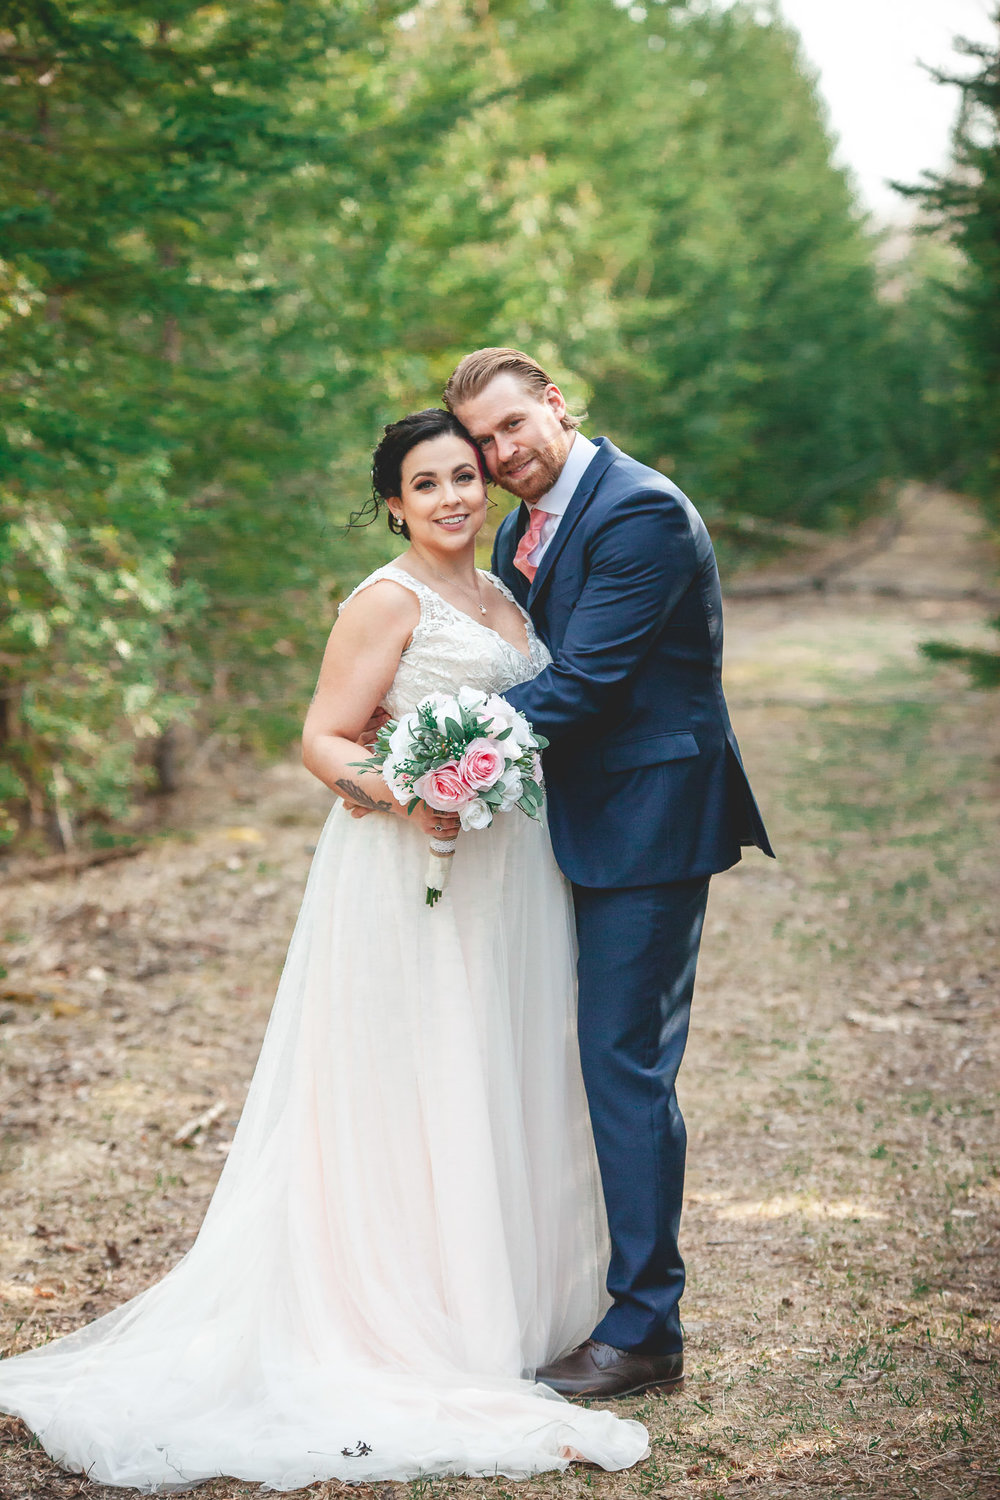 Amy D Photography- Bride and Groom-Barrie Wedding Photography Muskoka Wedding Photography Bride and Groom Poses Bride and Groom Train Tracks Snow Valley Wedding-93.jpg